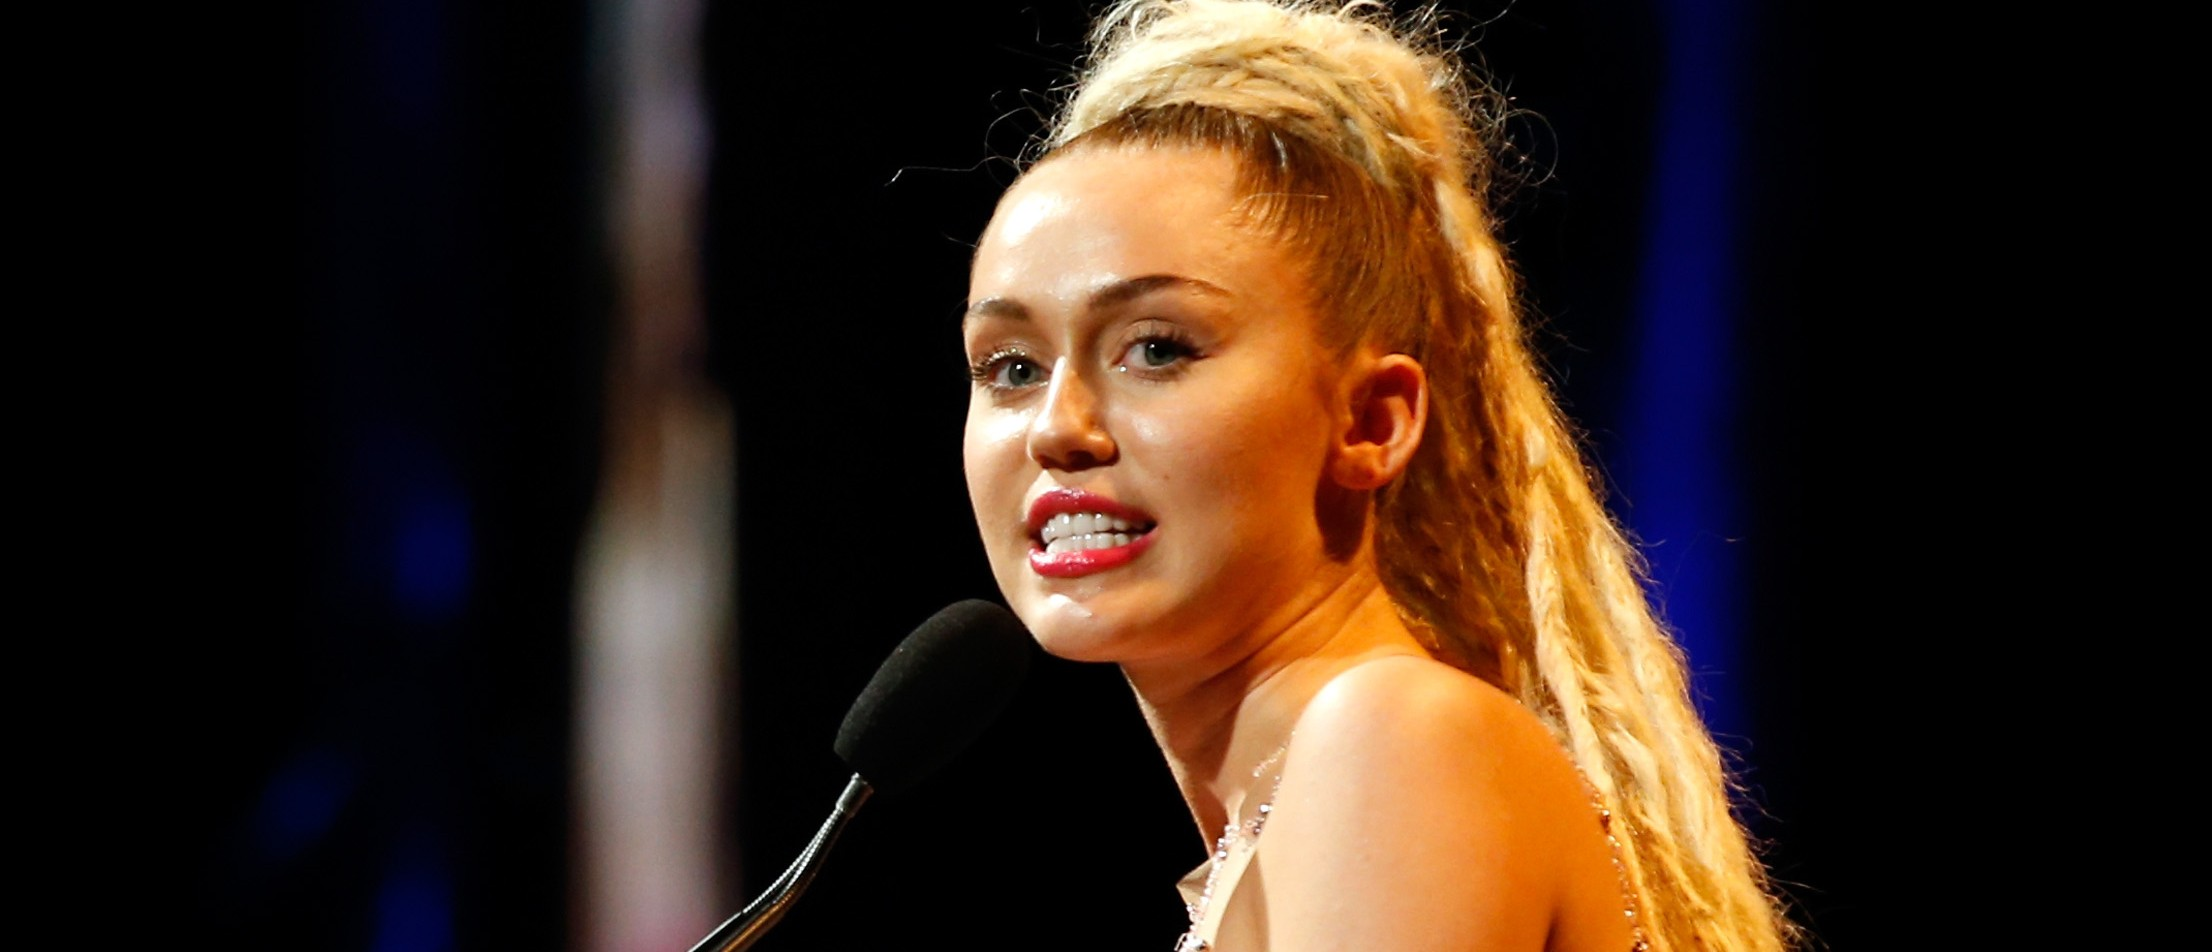 Miley Cyrus posts photo of Jodie Sweetin